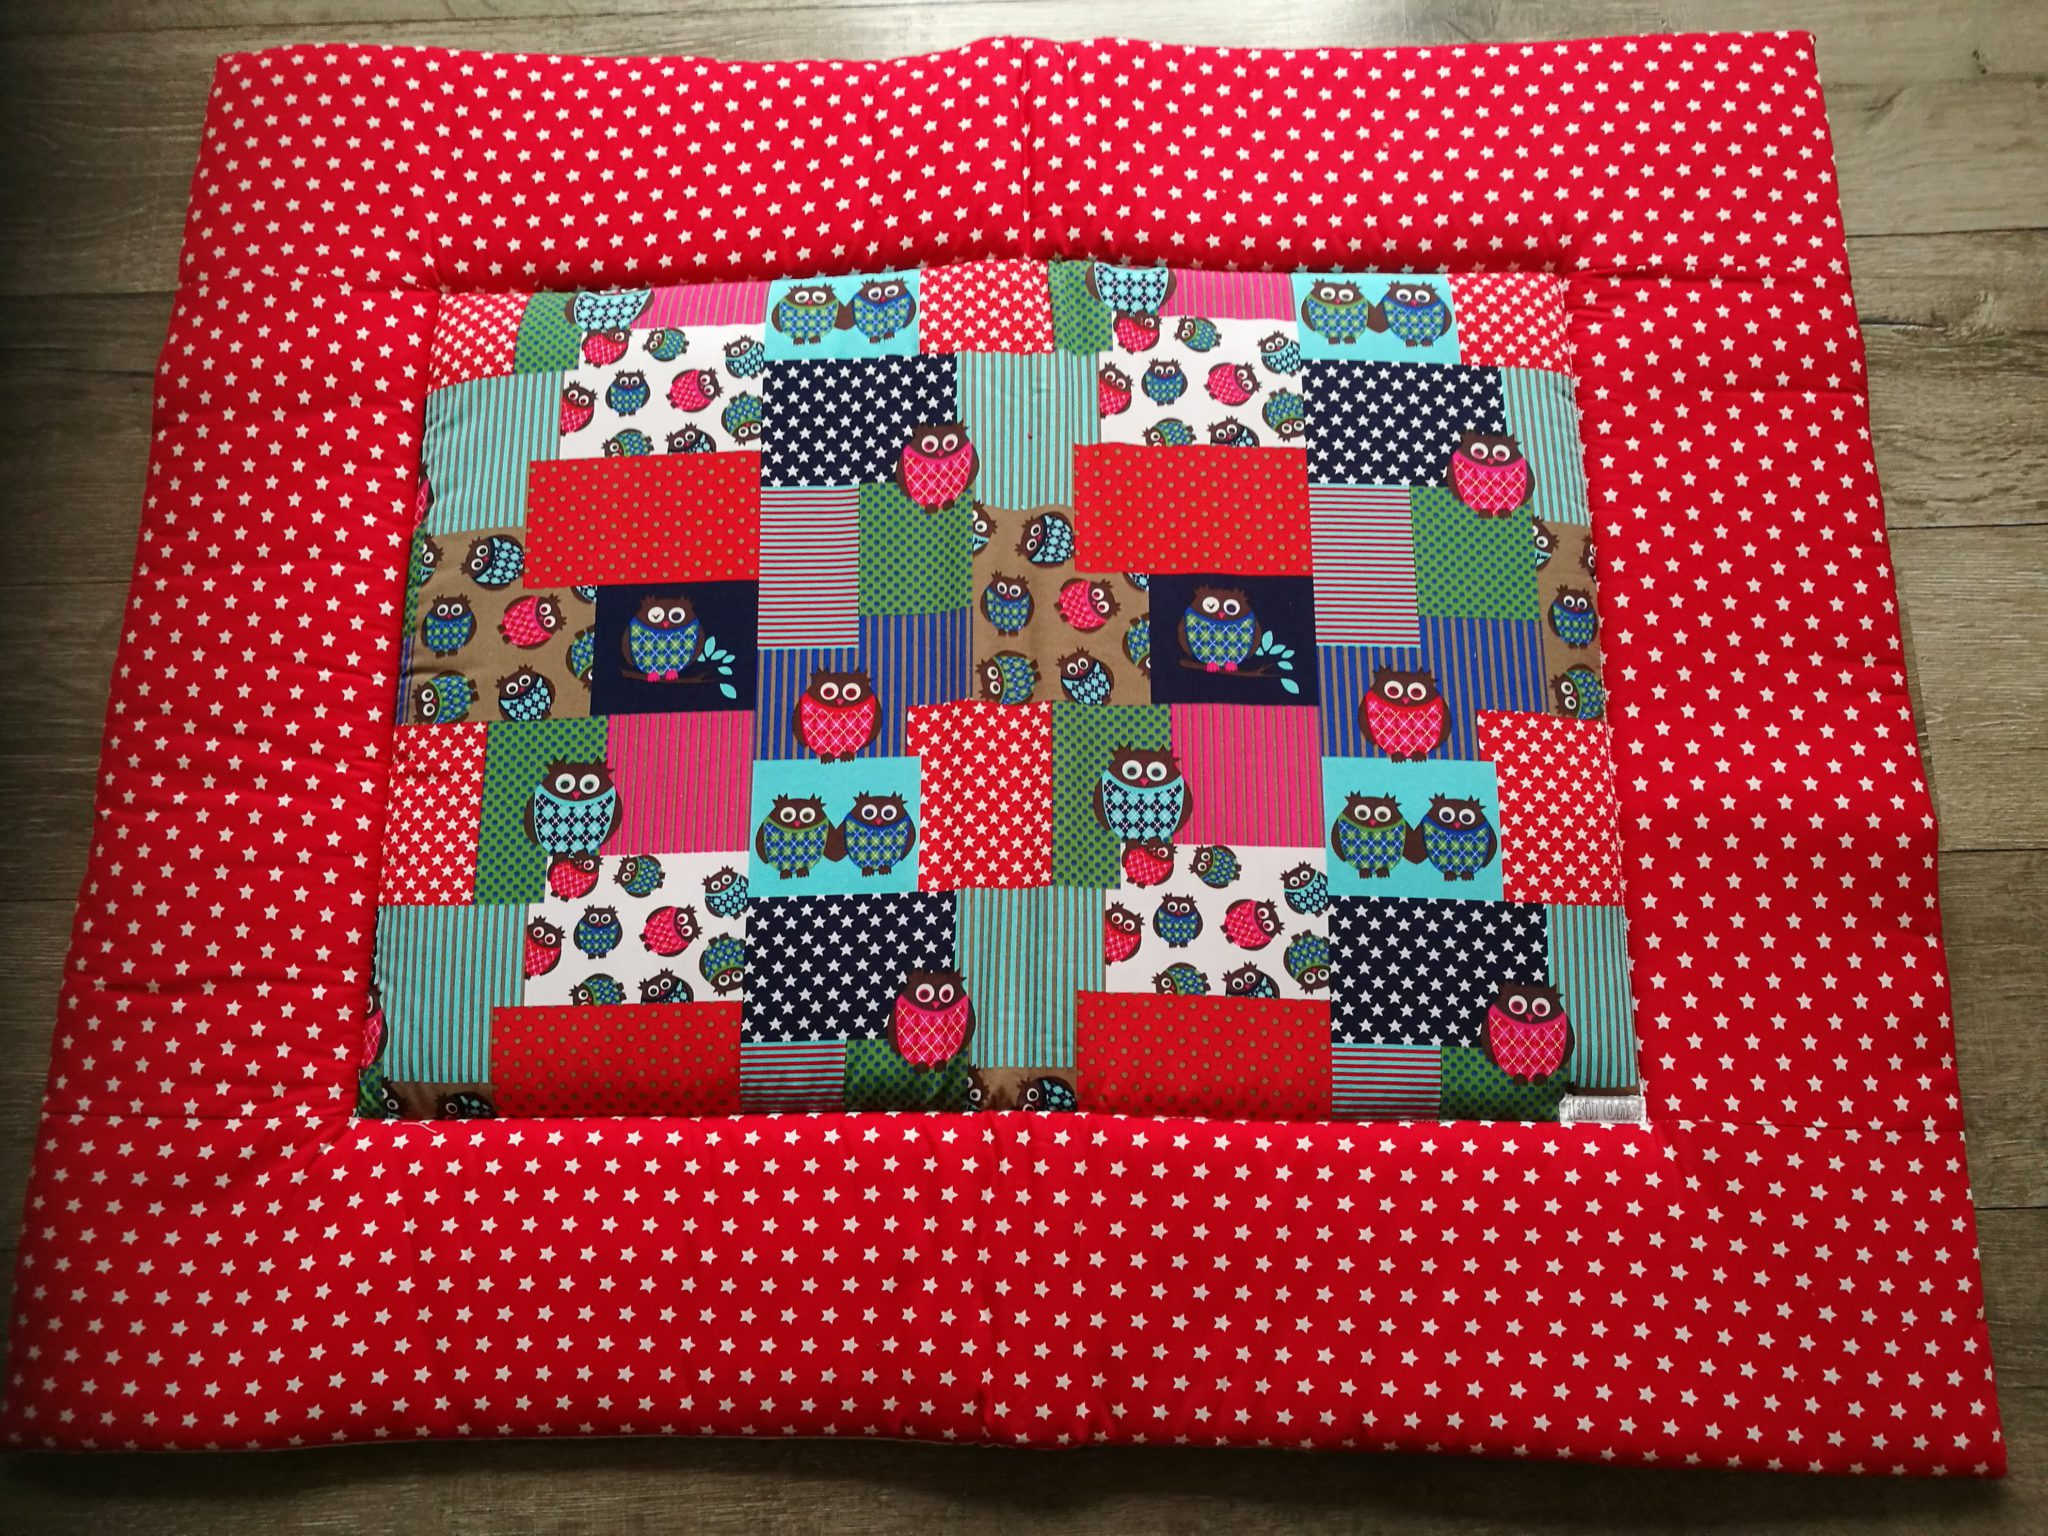 c10b0743de6 Boxkleed Uil blauw - rood quilt / rand rode ster